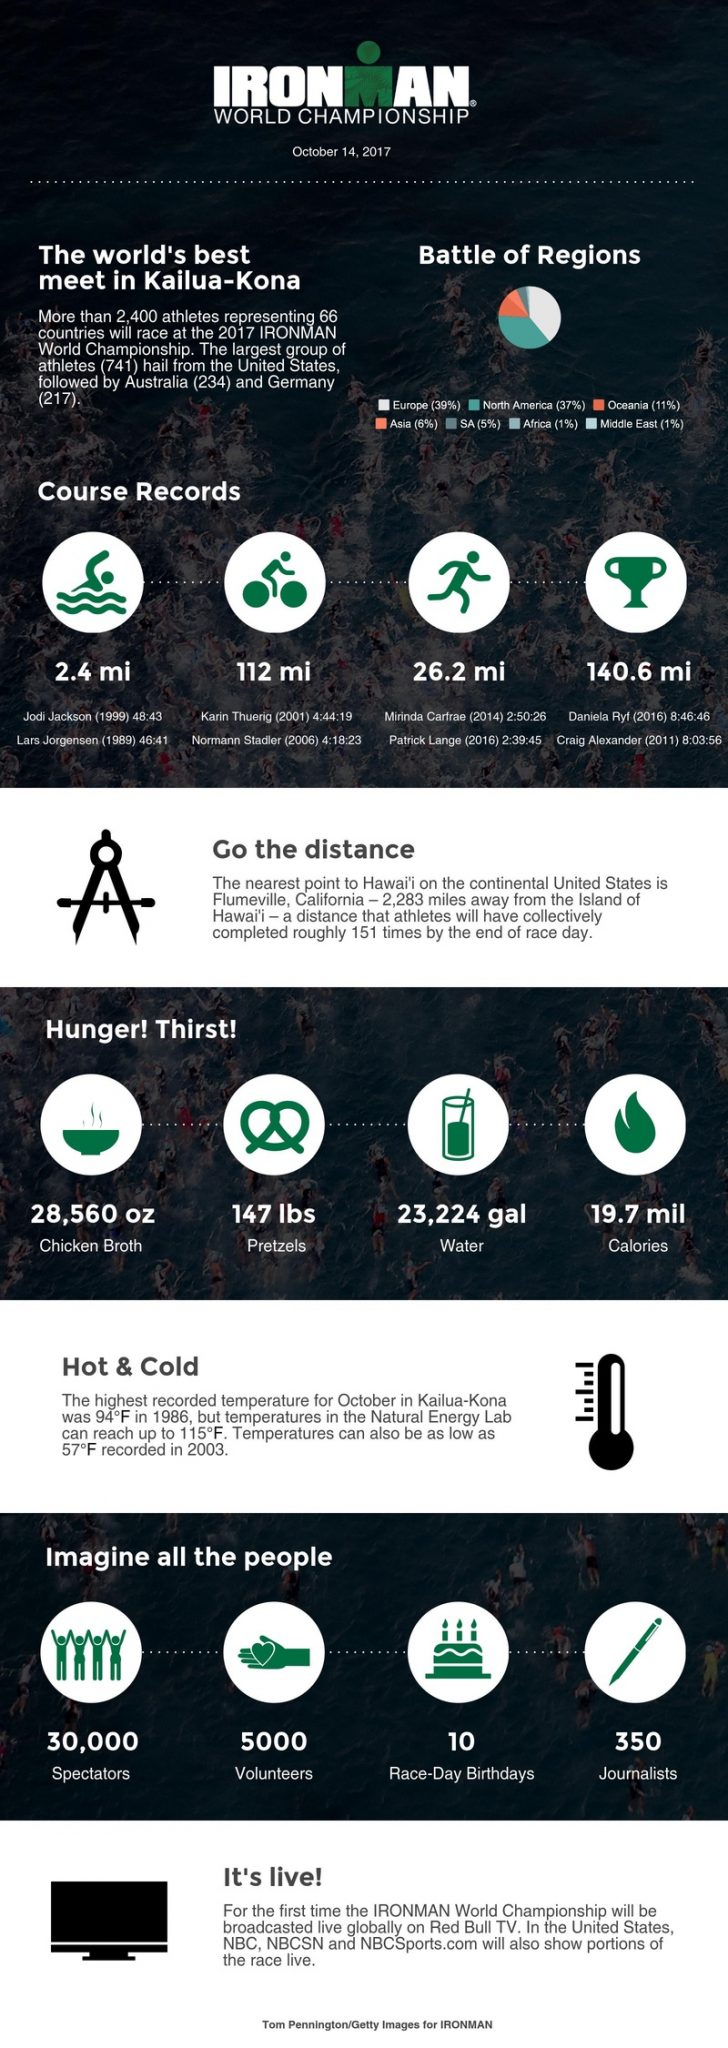 IRONMAN 2017 World Championship by the numbers - infographic - images Getty Images for IRONMAN